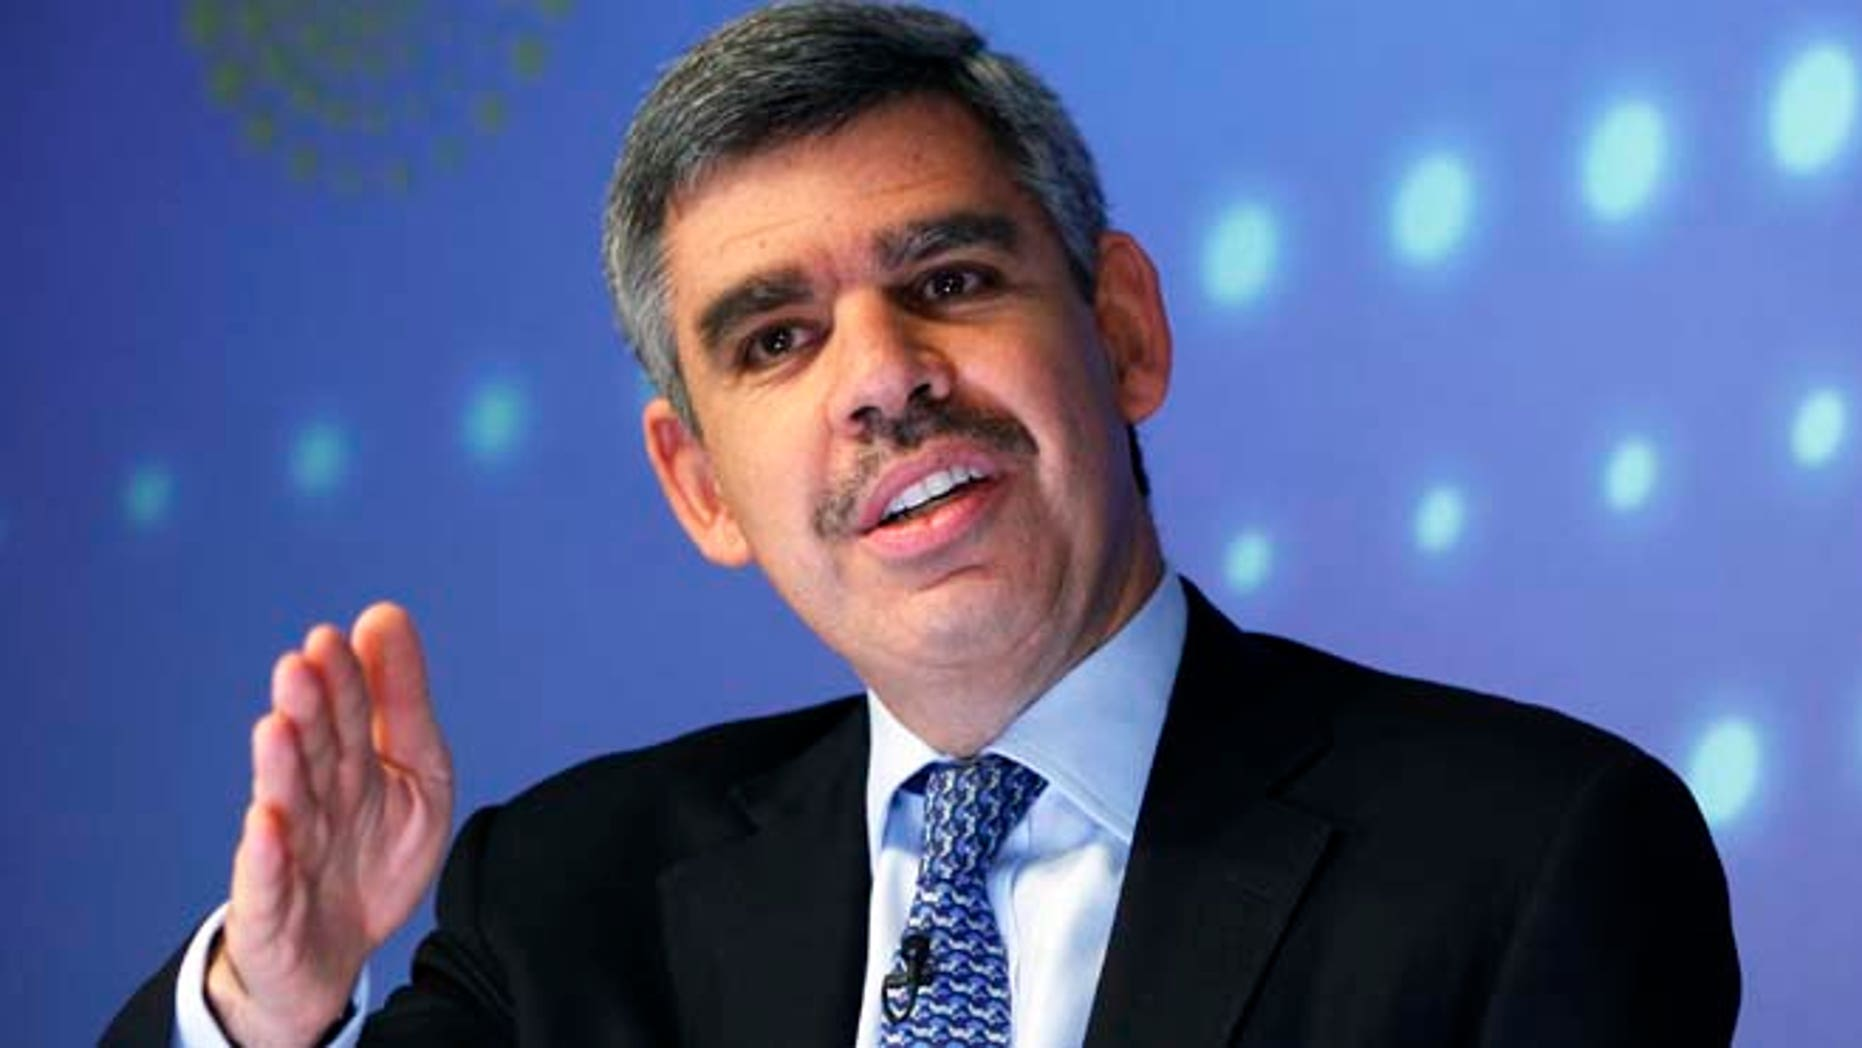 Former PIMCO Chief Executive Officer and Co-Chief Investment Officer Mohamed El-Erian speaks during an interview at Thomson Reuters.